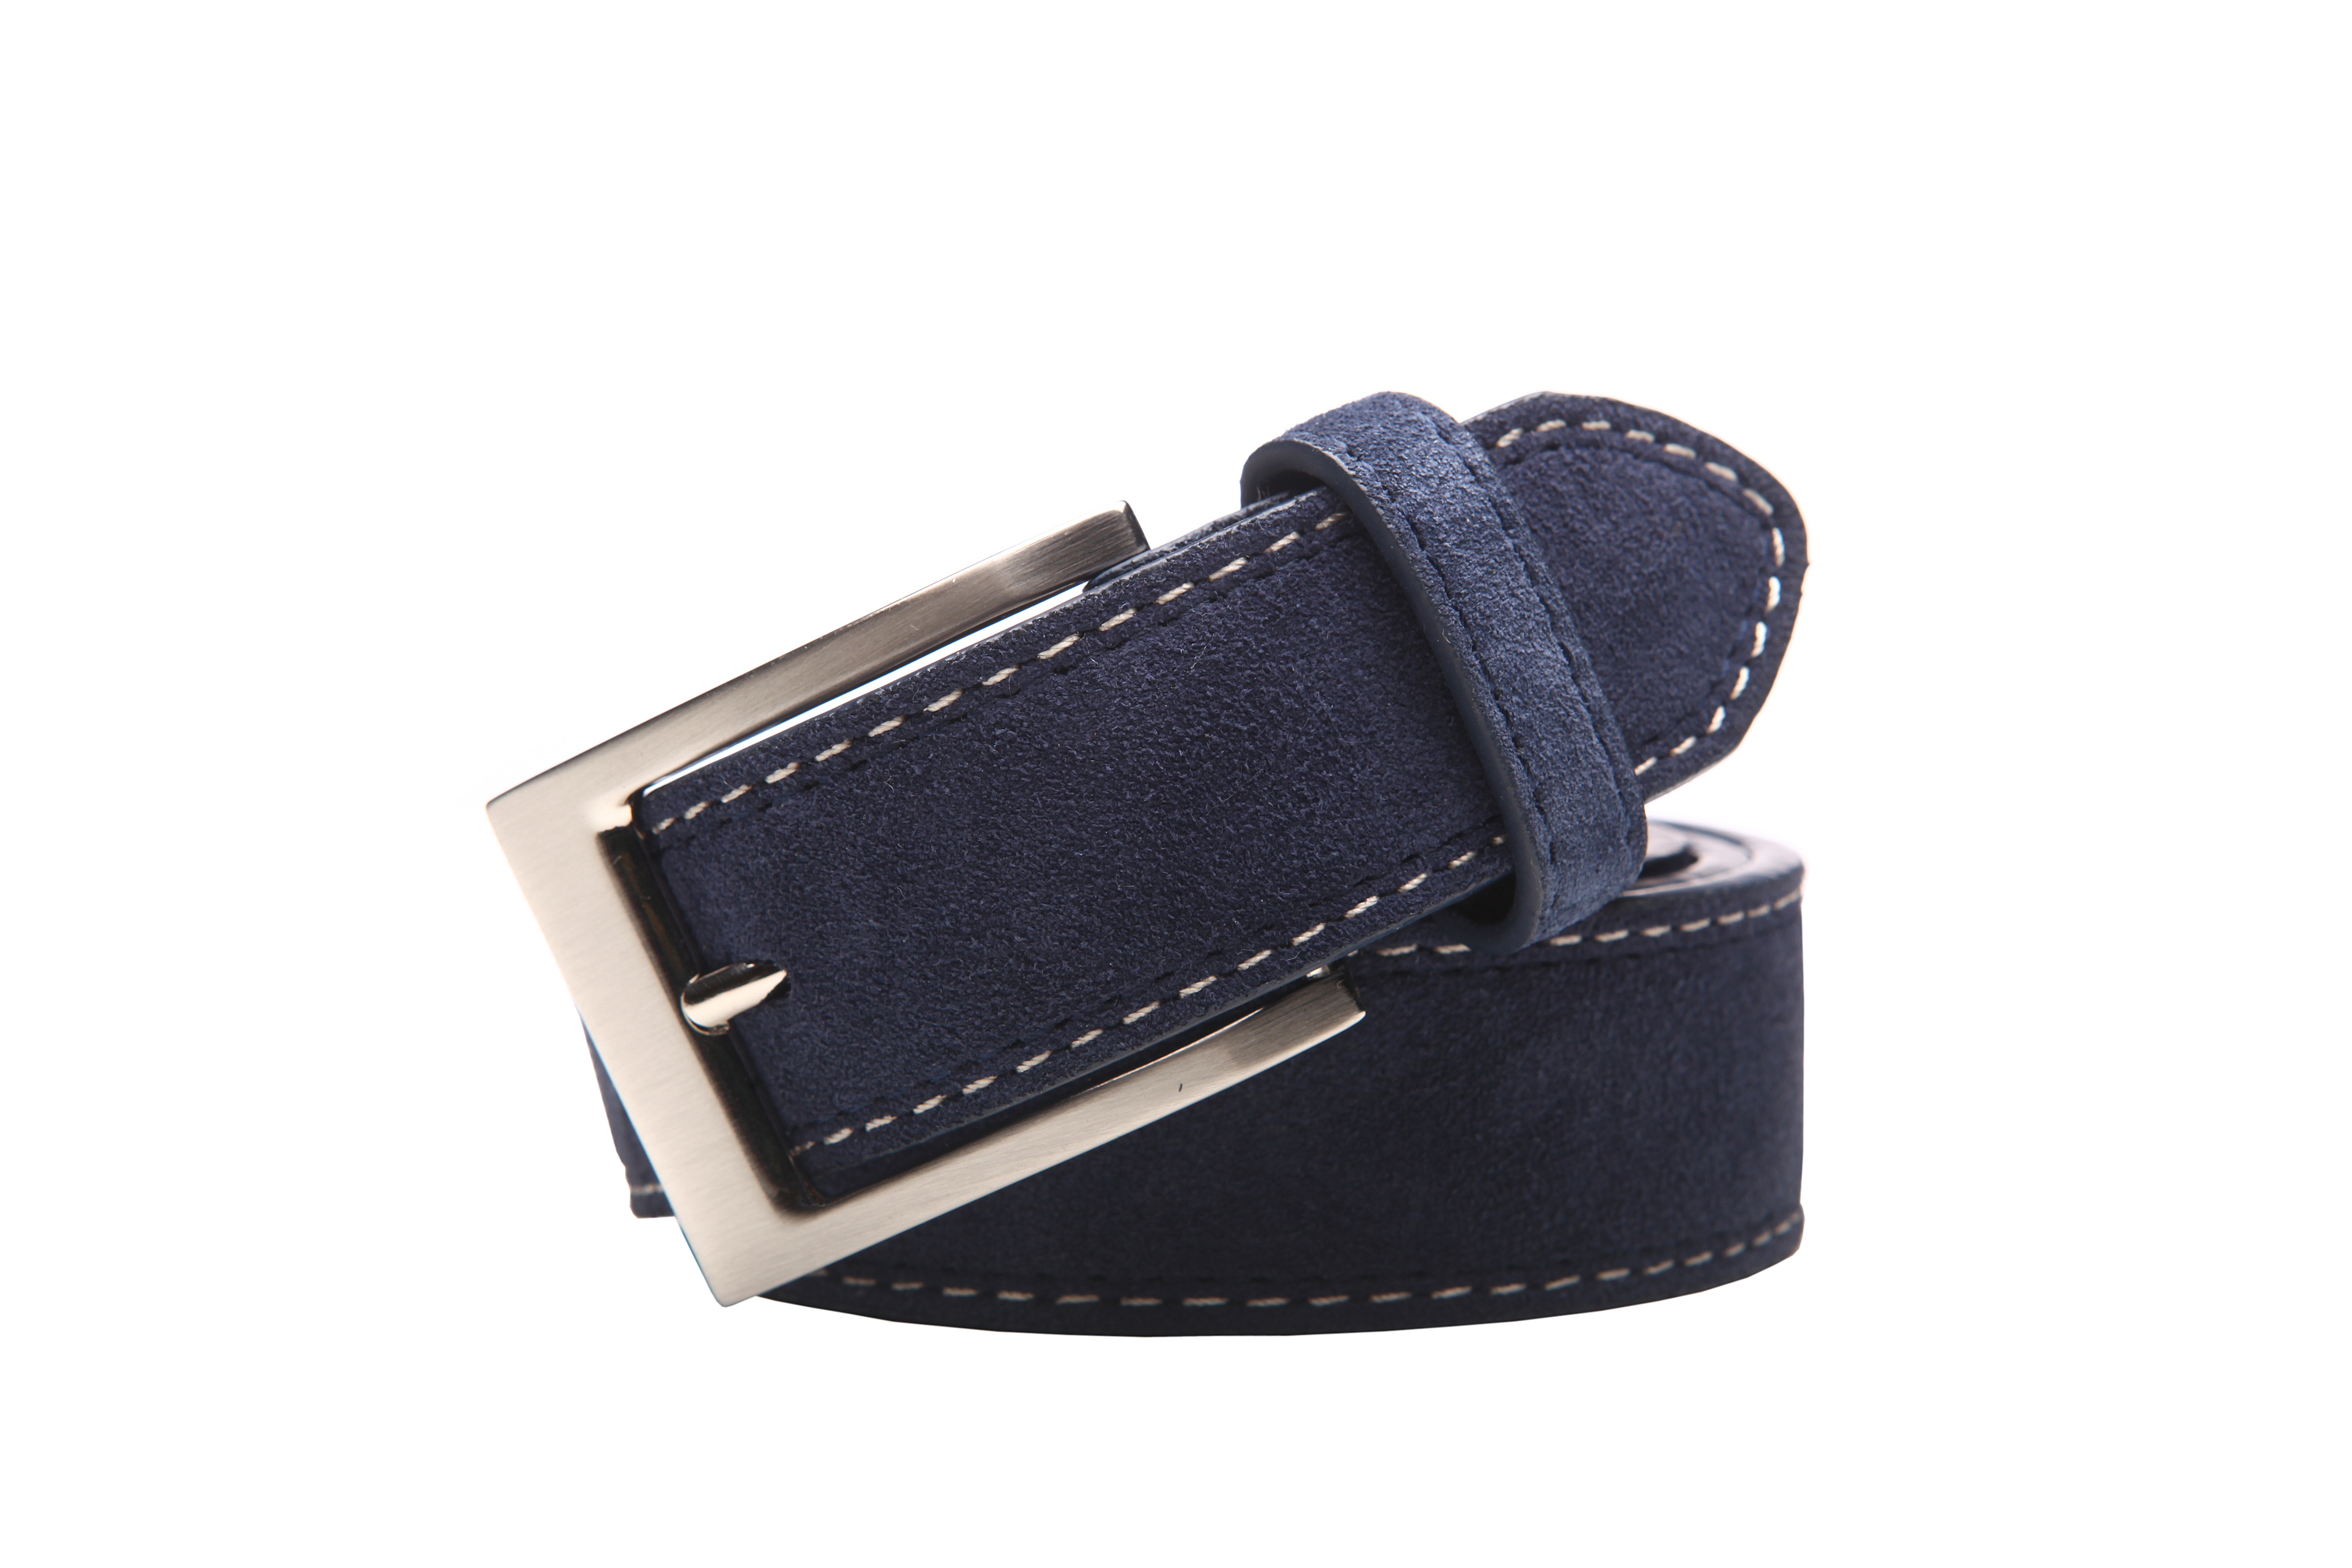 New Style Fashion Brand Genuine Leather Belt For Jeans Leather Belt Men Mens Belts Luxury Suede Belt StrapsMens Belts   -